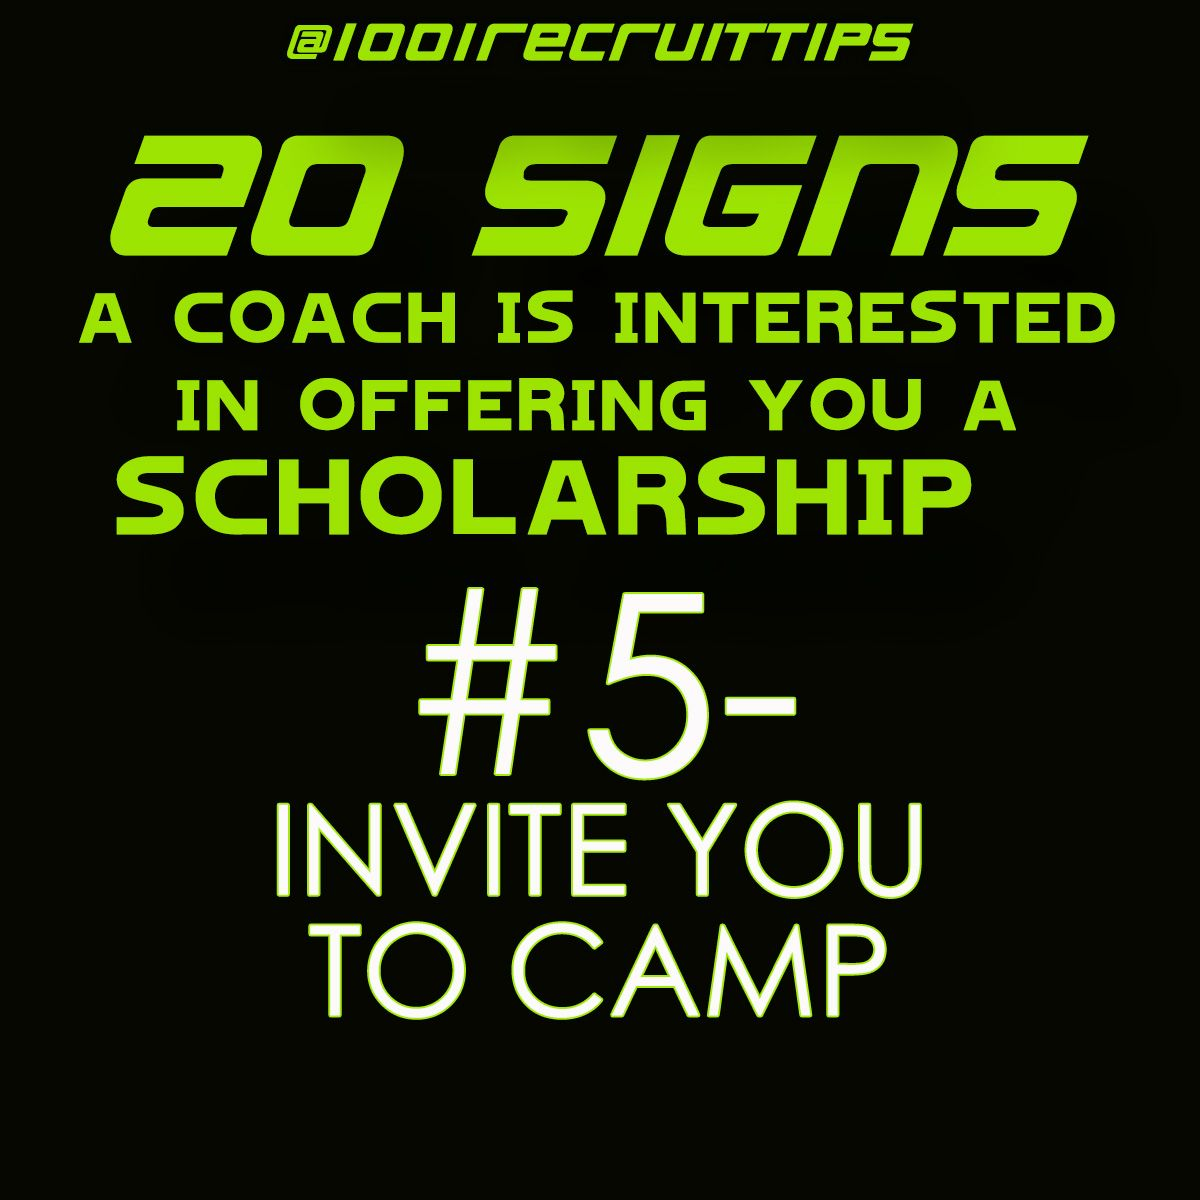 Athletic Scholarship Offers 20 Signs a coach is